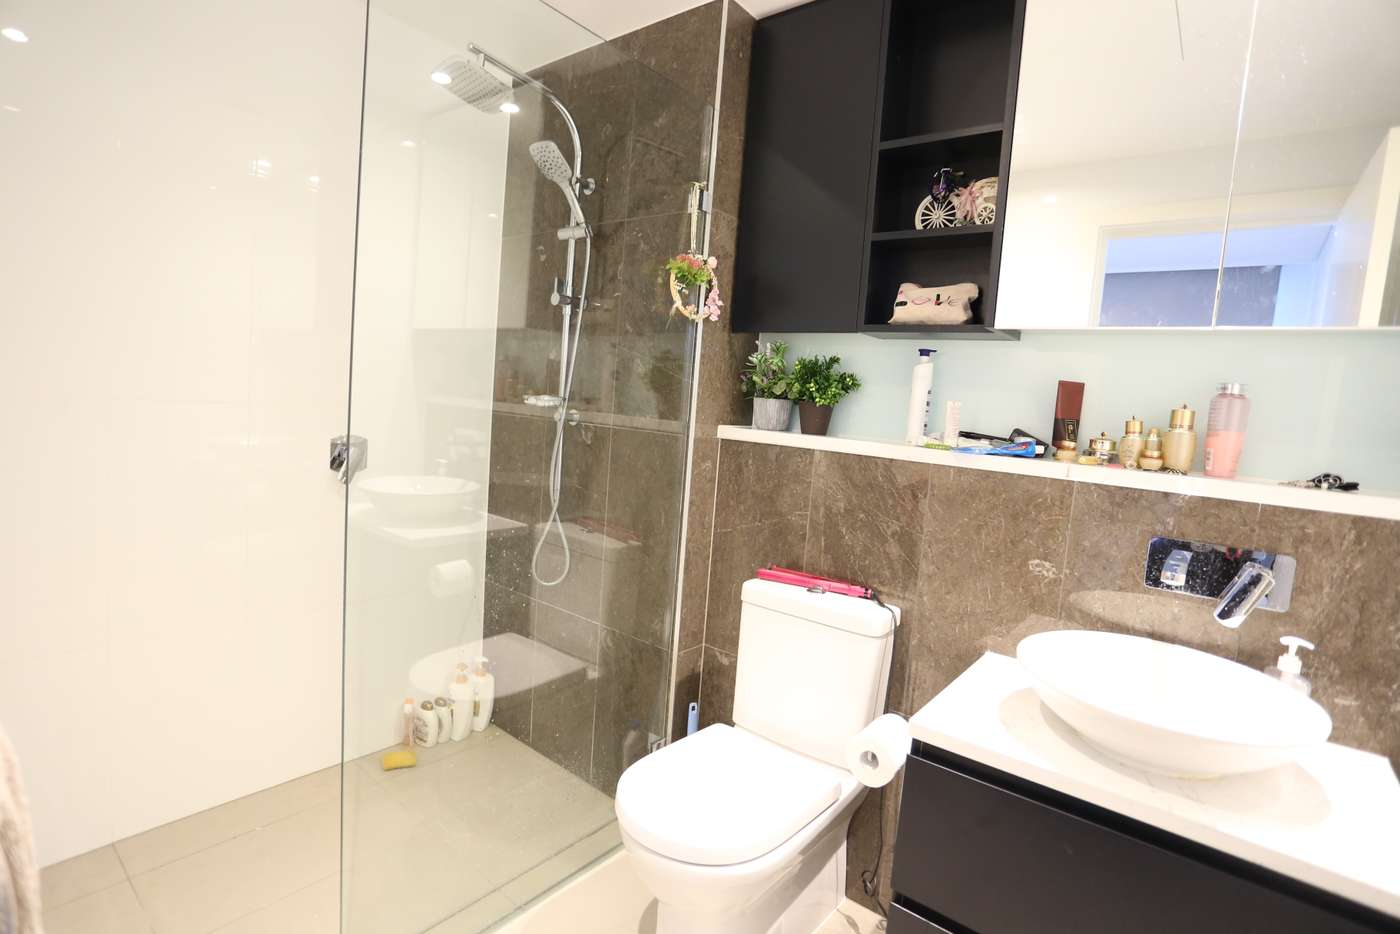 Sixth view of Homely apartment listing, E806/11 Wentworth Place, Wentworth Point NSW 2127